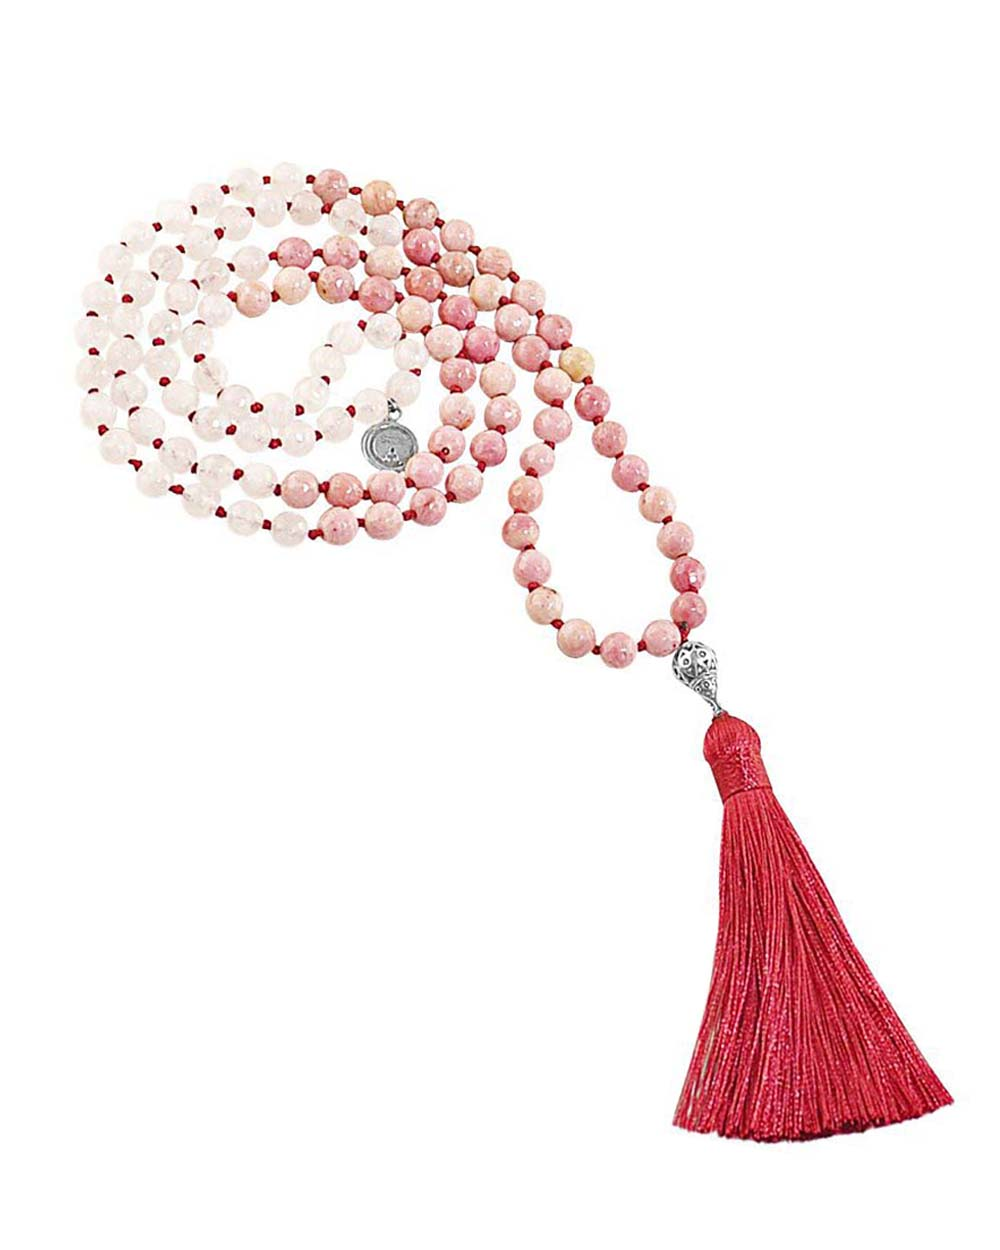 Rose Quartz and Rhodonite Mala Inner Healing and Growth